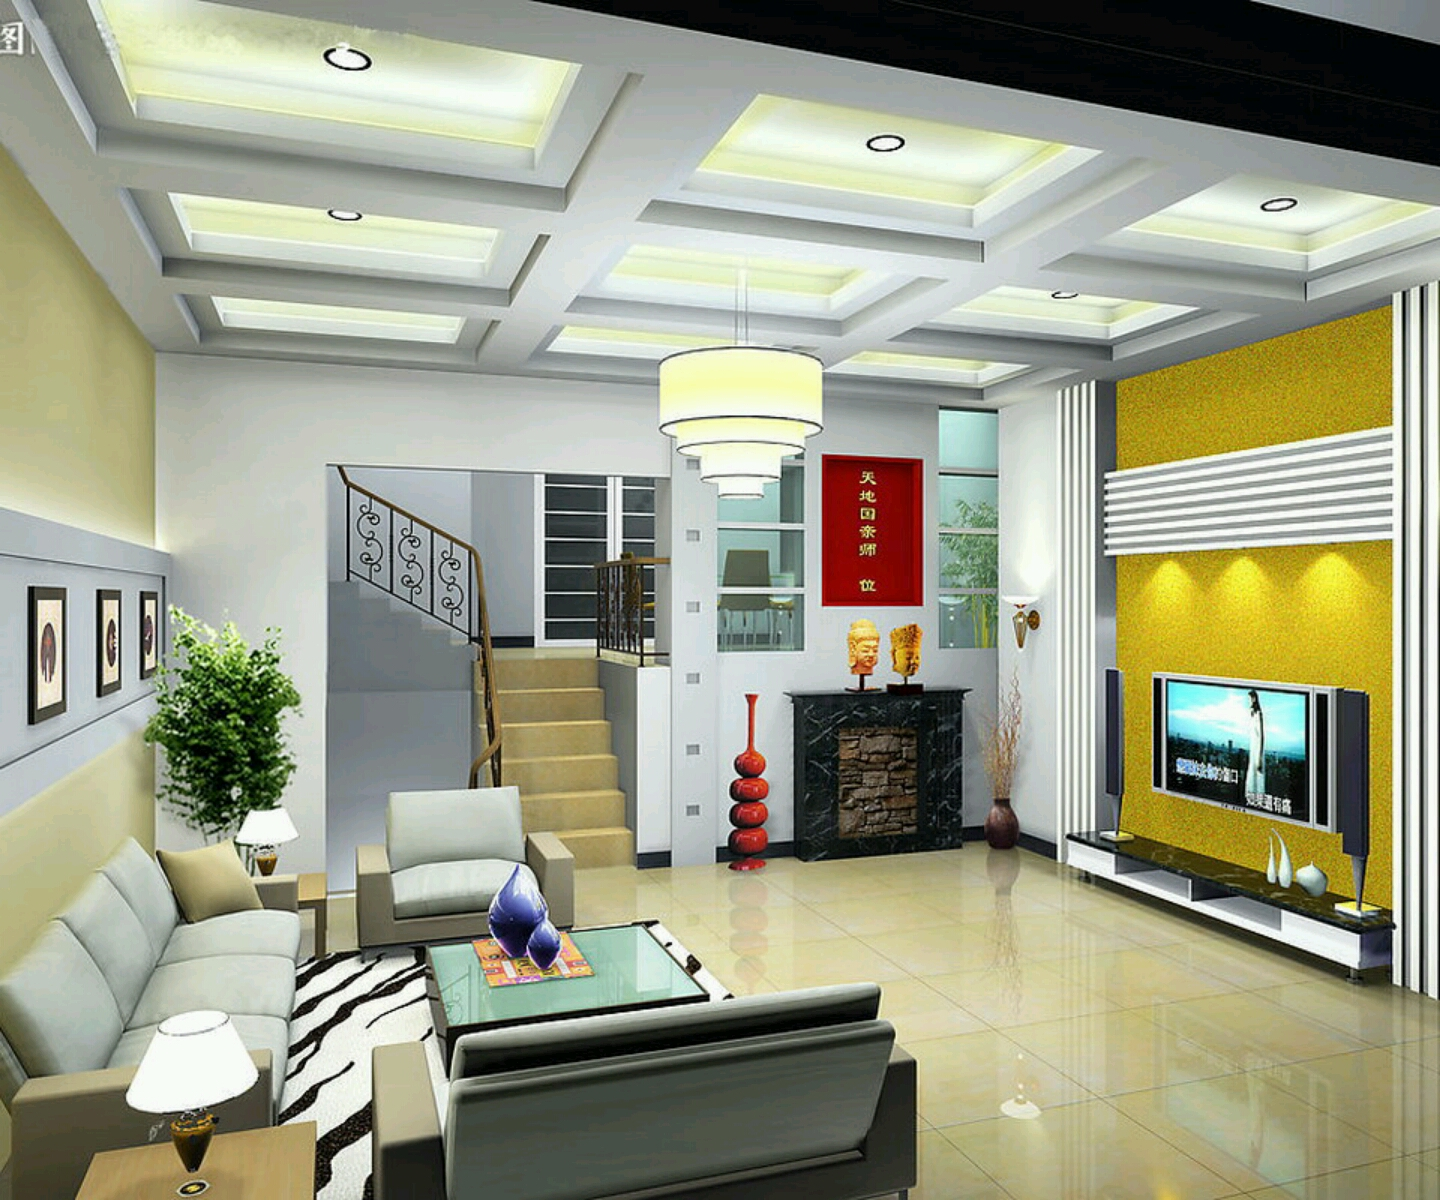 rumah rumah minimalis: Ultra Modern living rooms interior designs ...